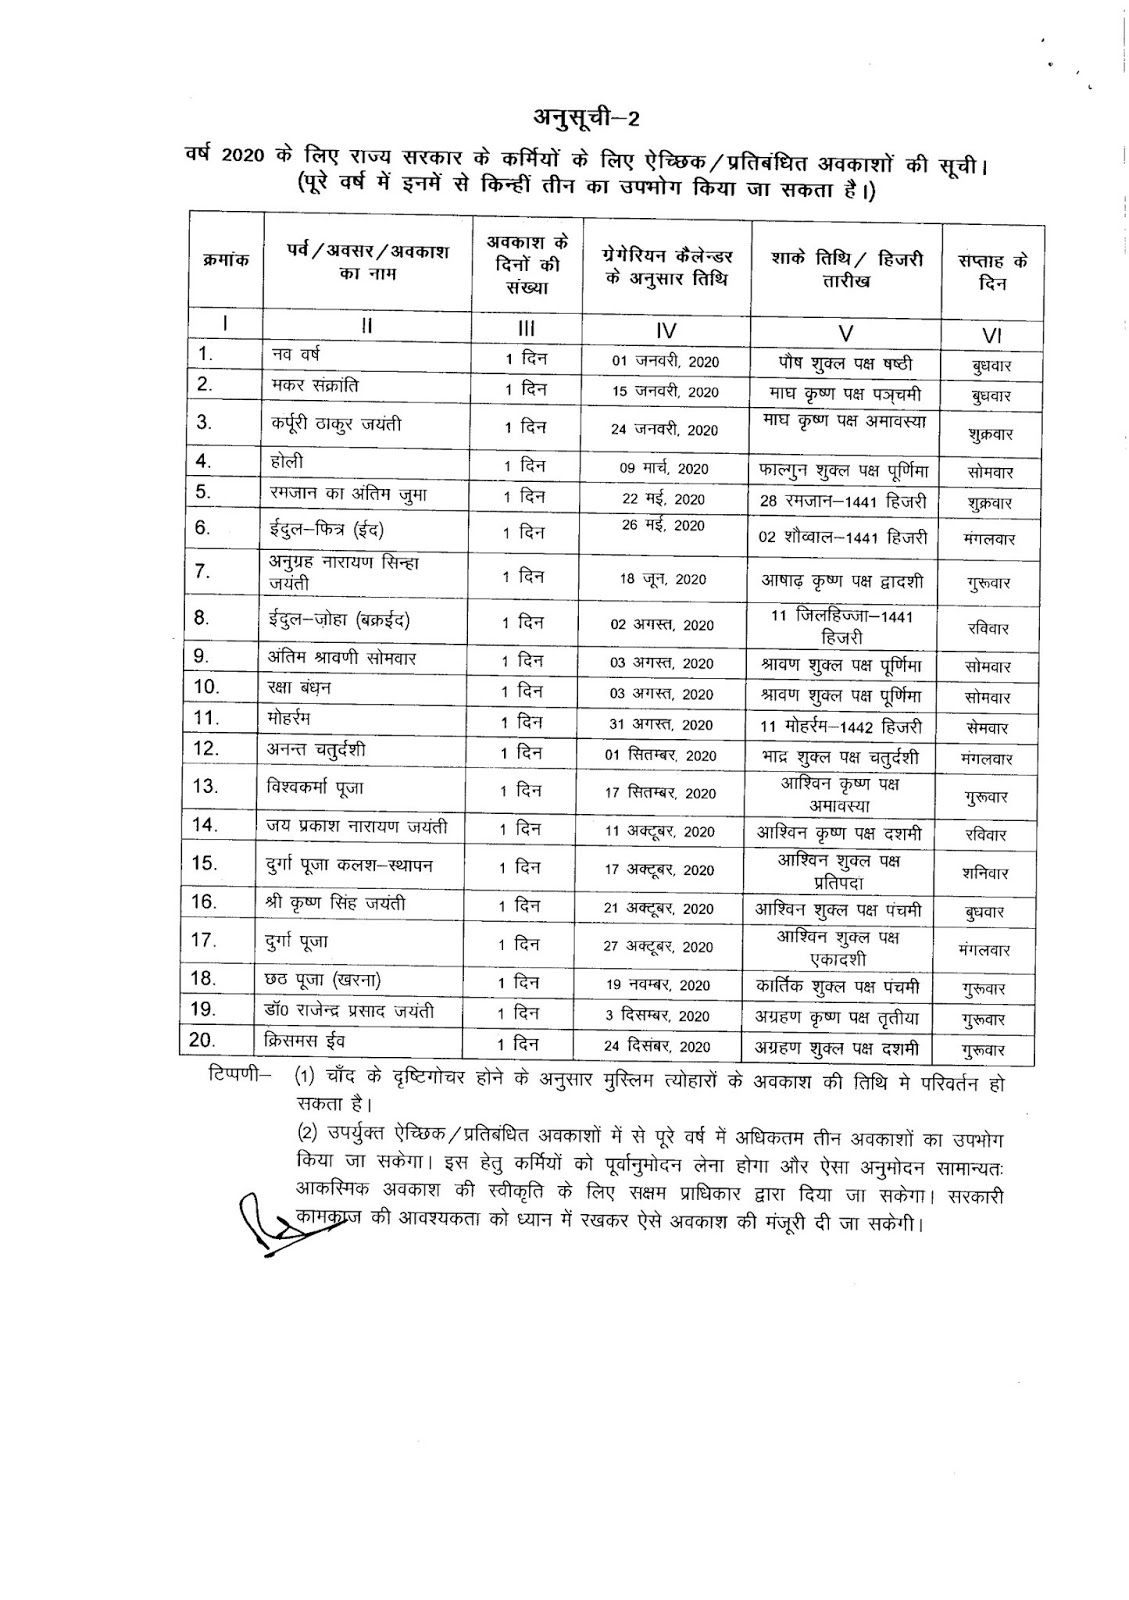 Bihar Government Calendar 2020 #educratsweb intended for Bihar Govt Calendar 2020